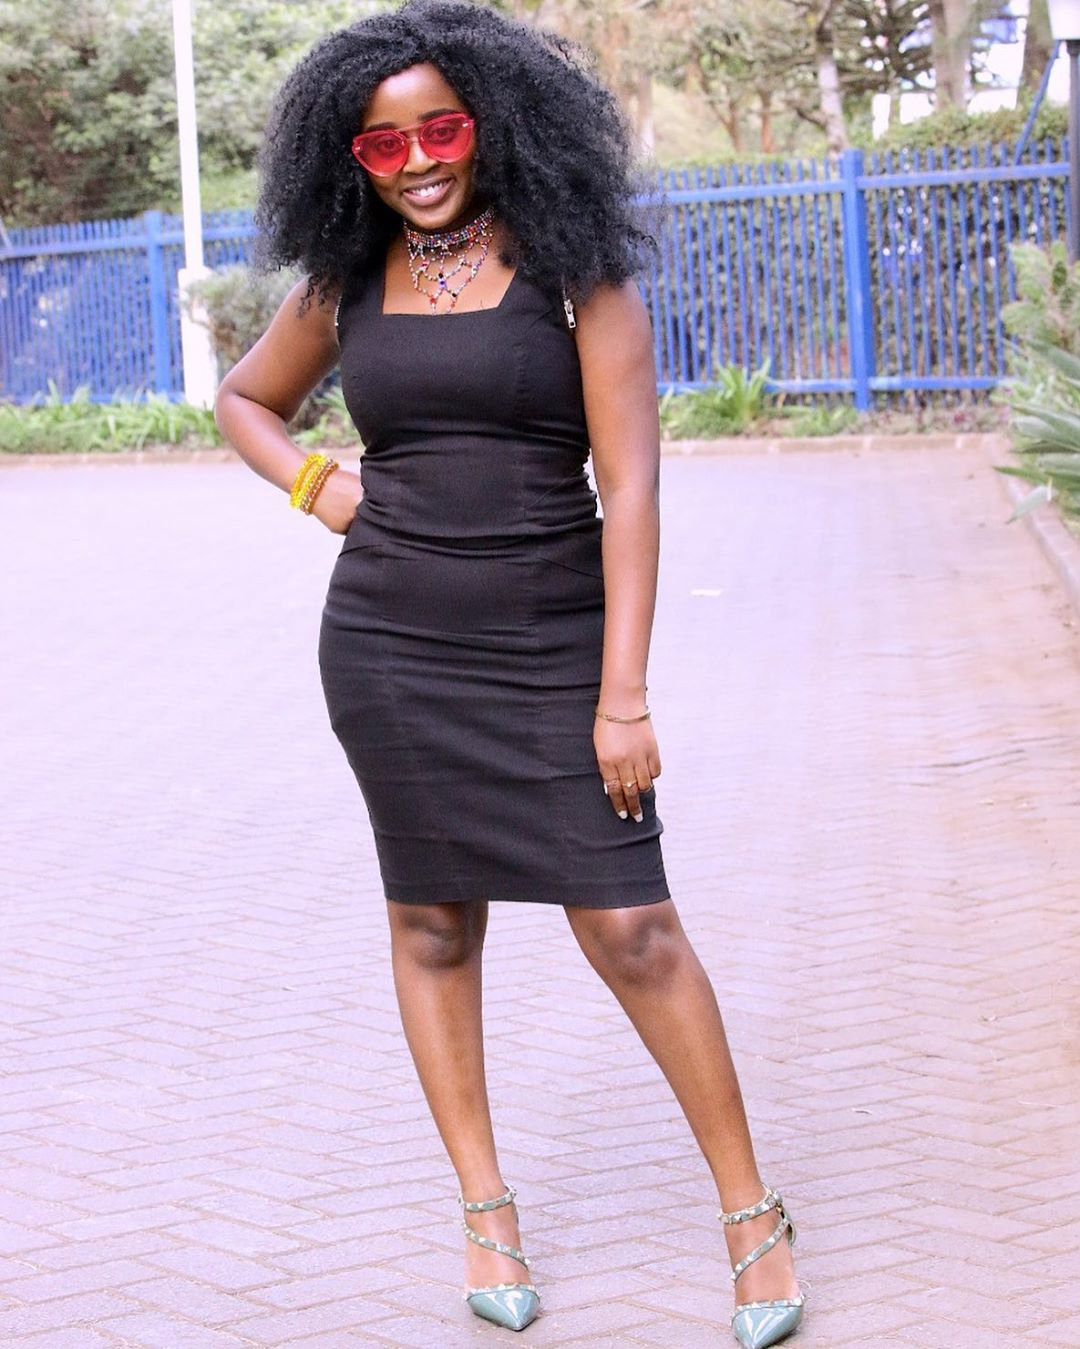 Nadia Mukami - 'I was told I couldn't be a celeb for not having hips,' cried Nadia Mukami